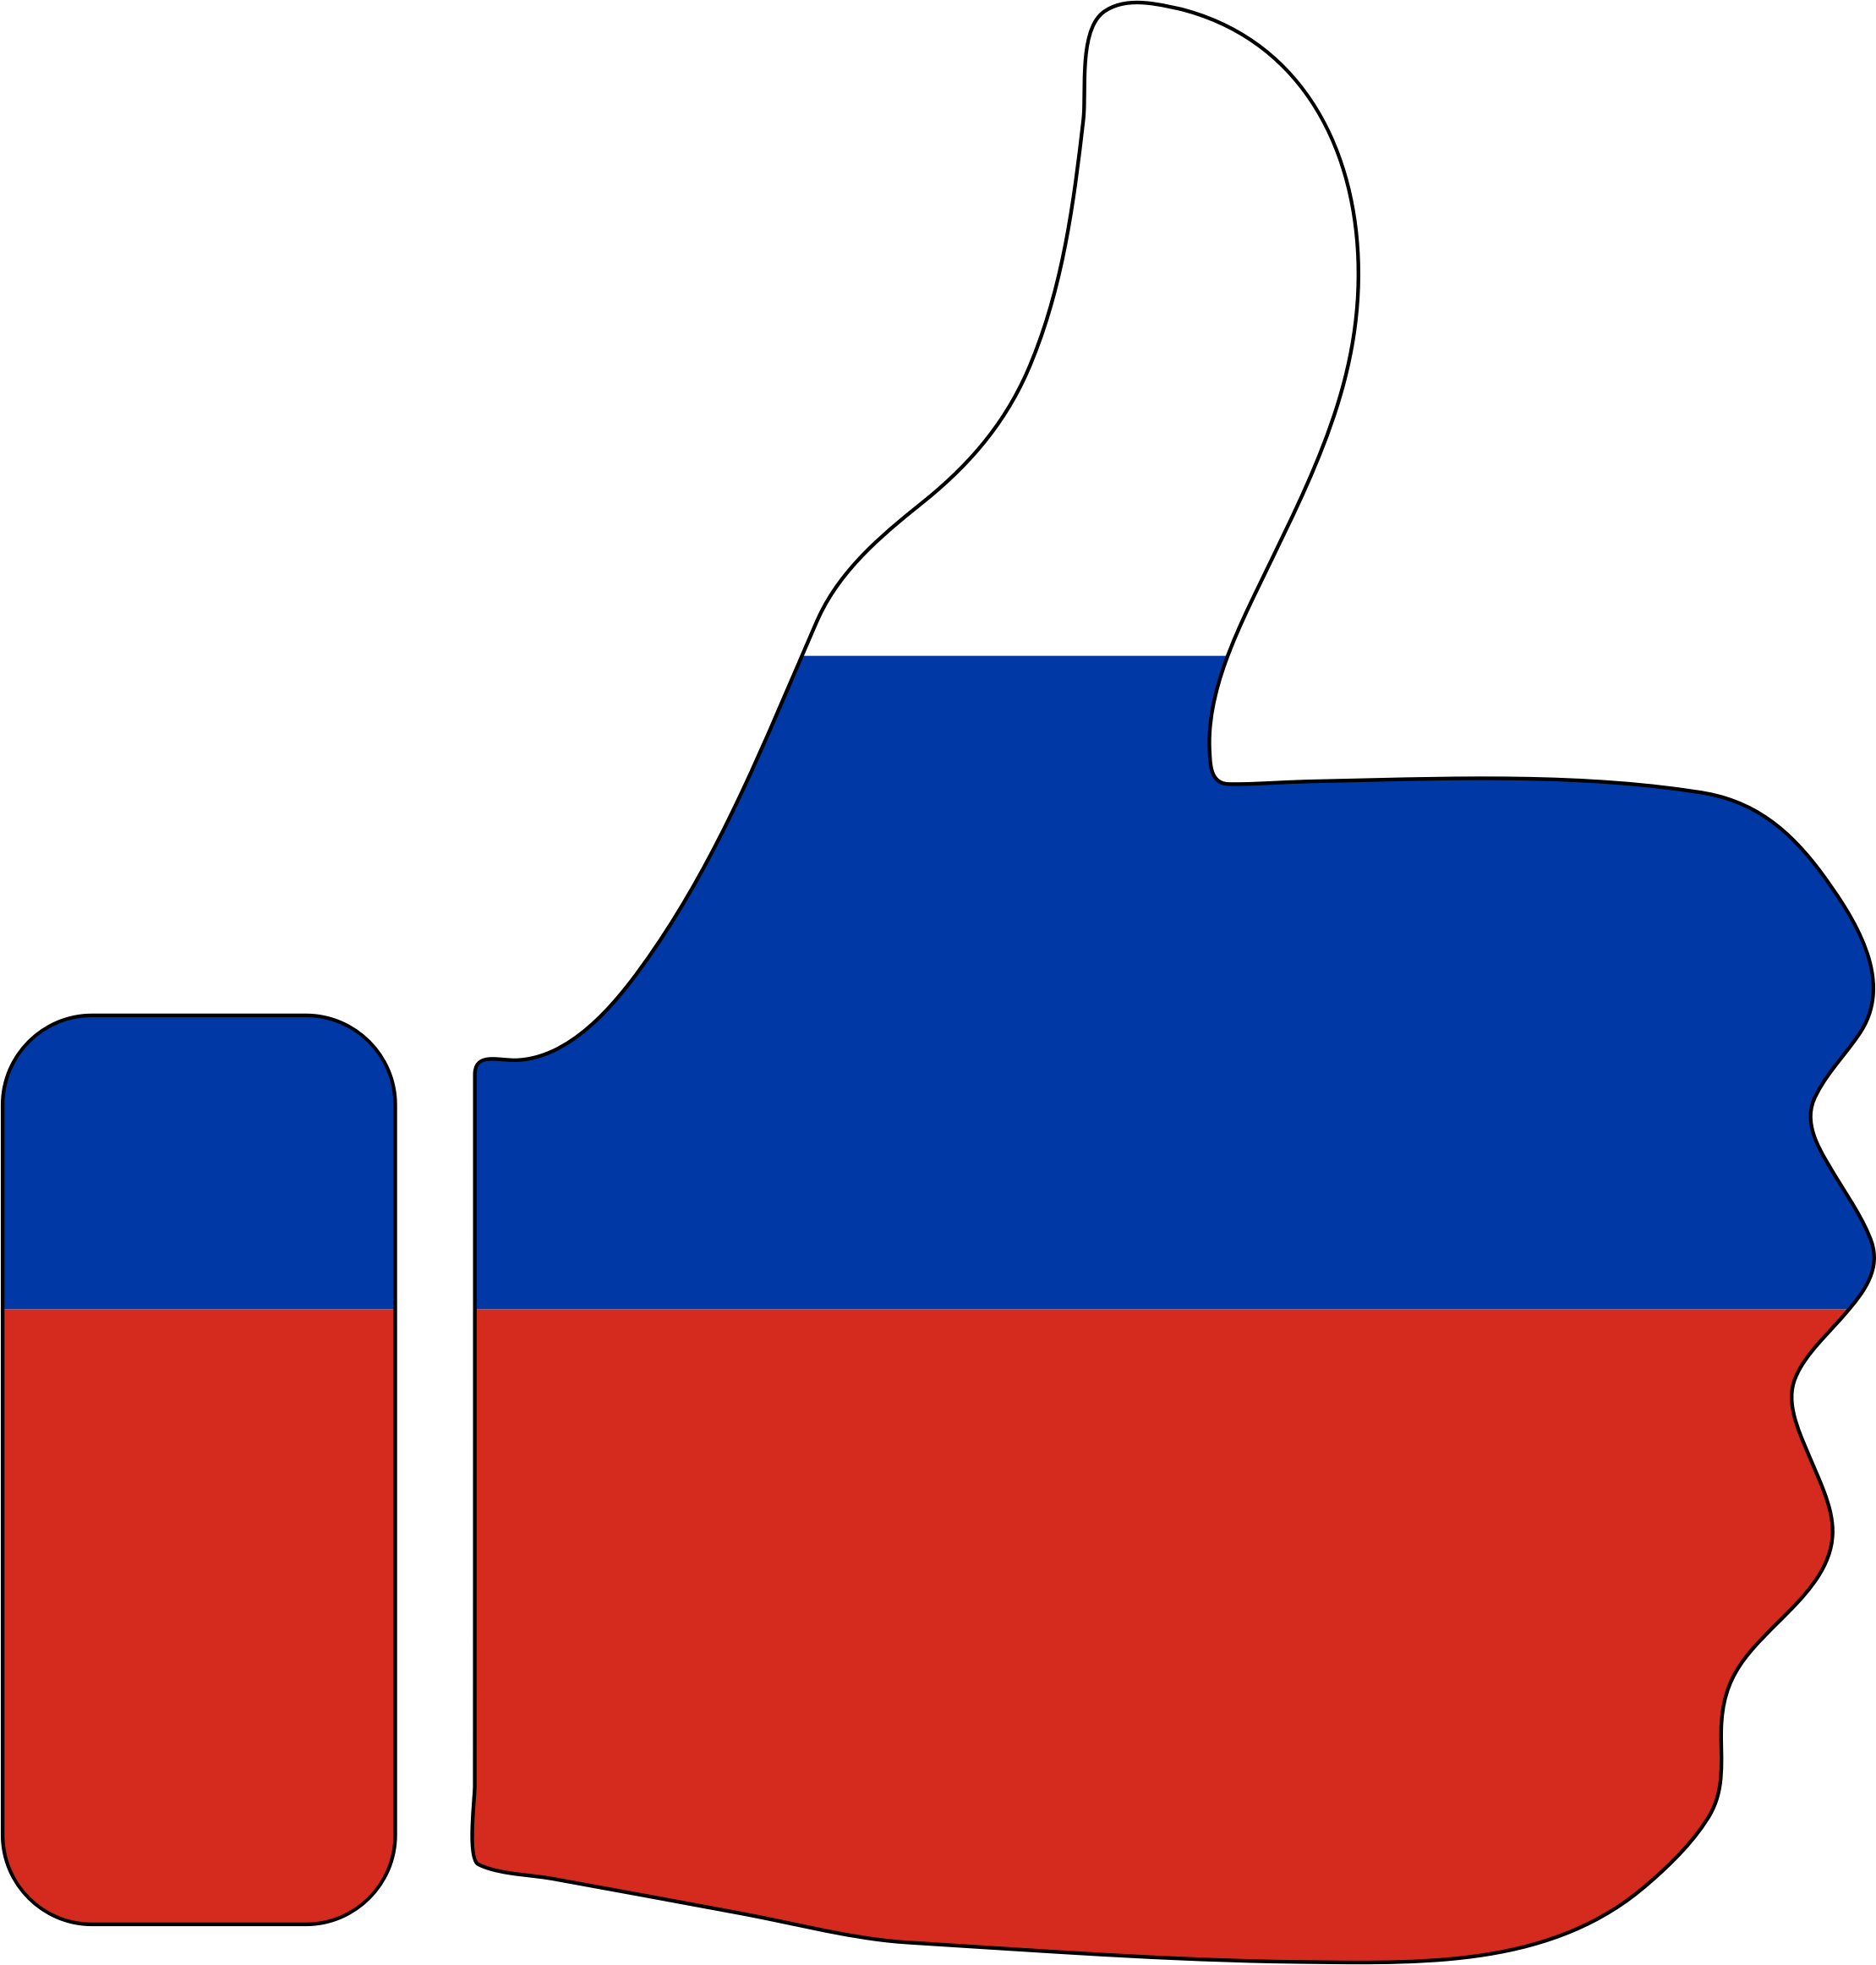 Thumbs Up Russia With Stroke by GDJ